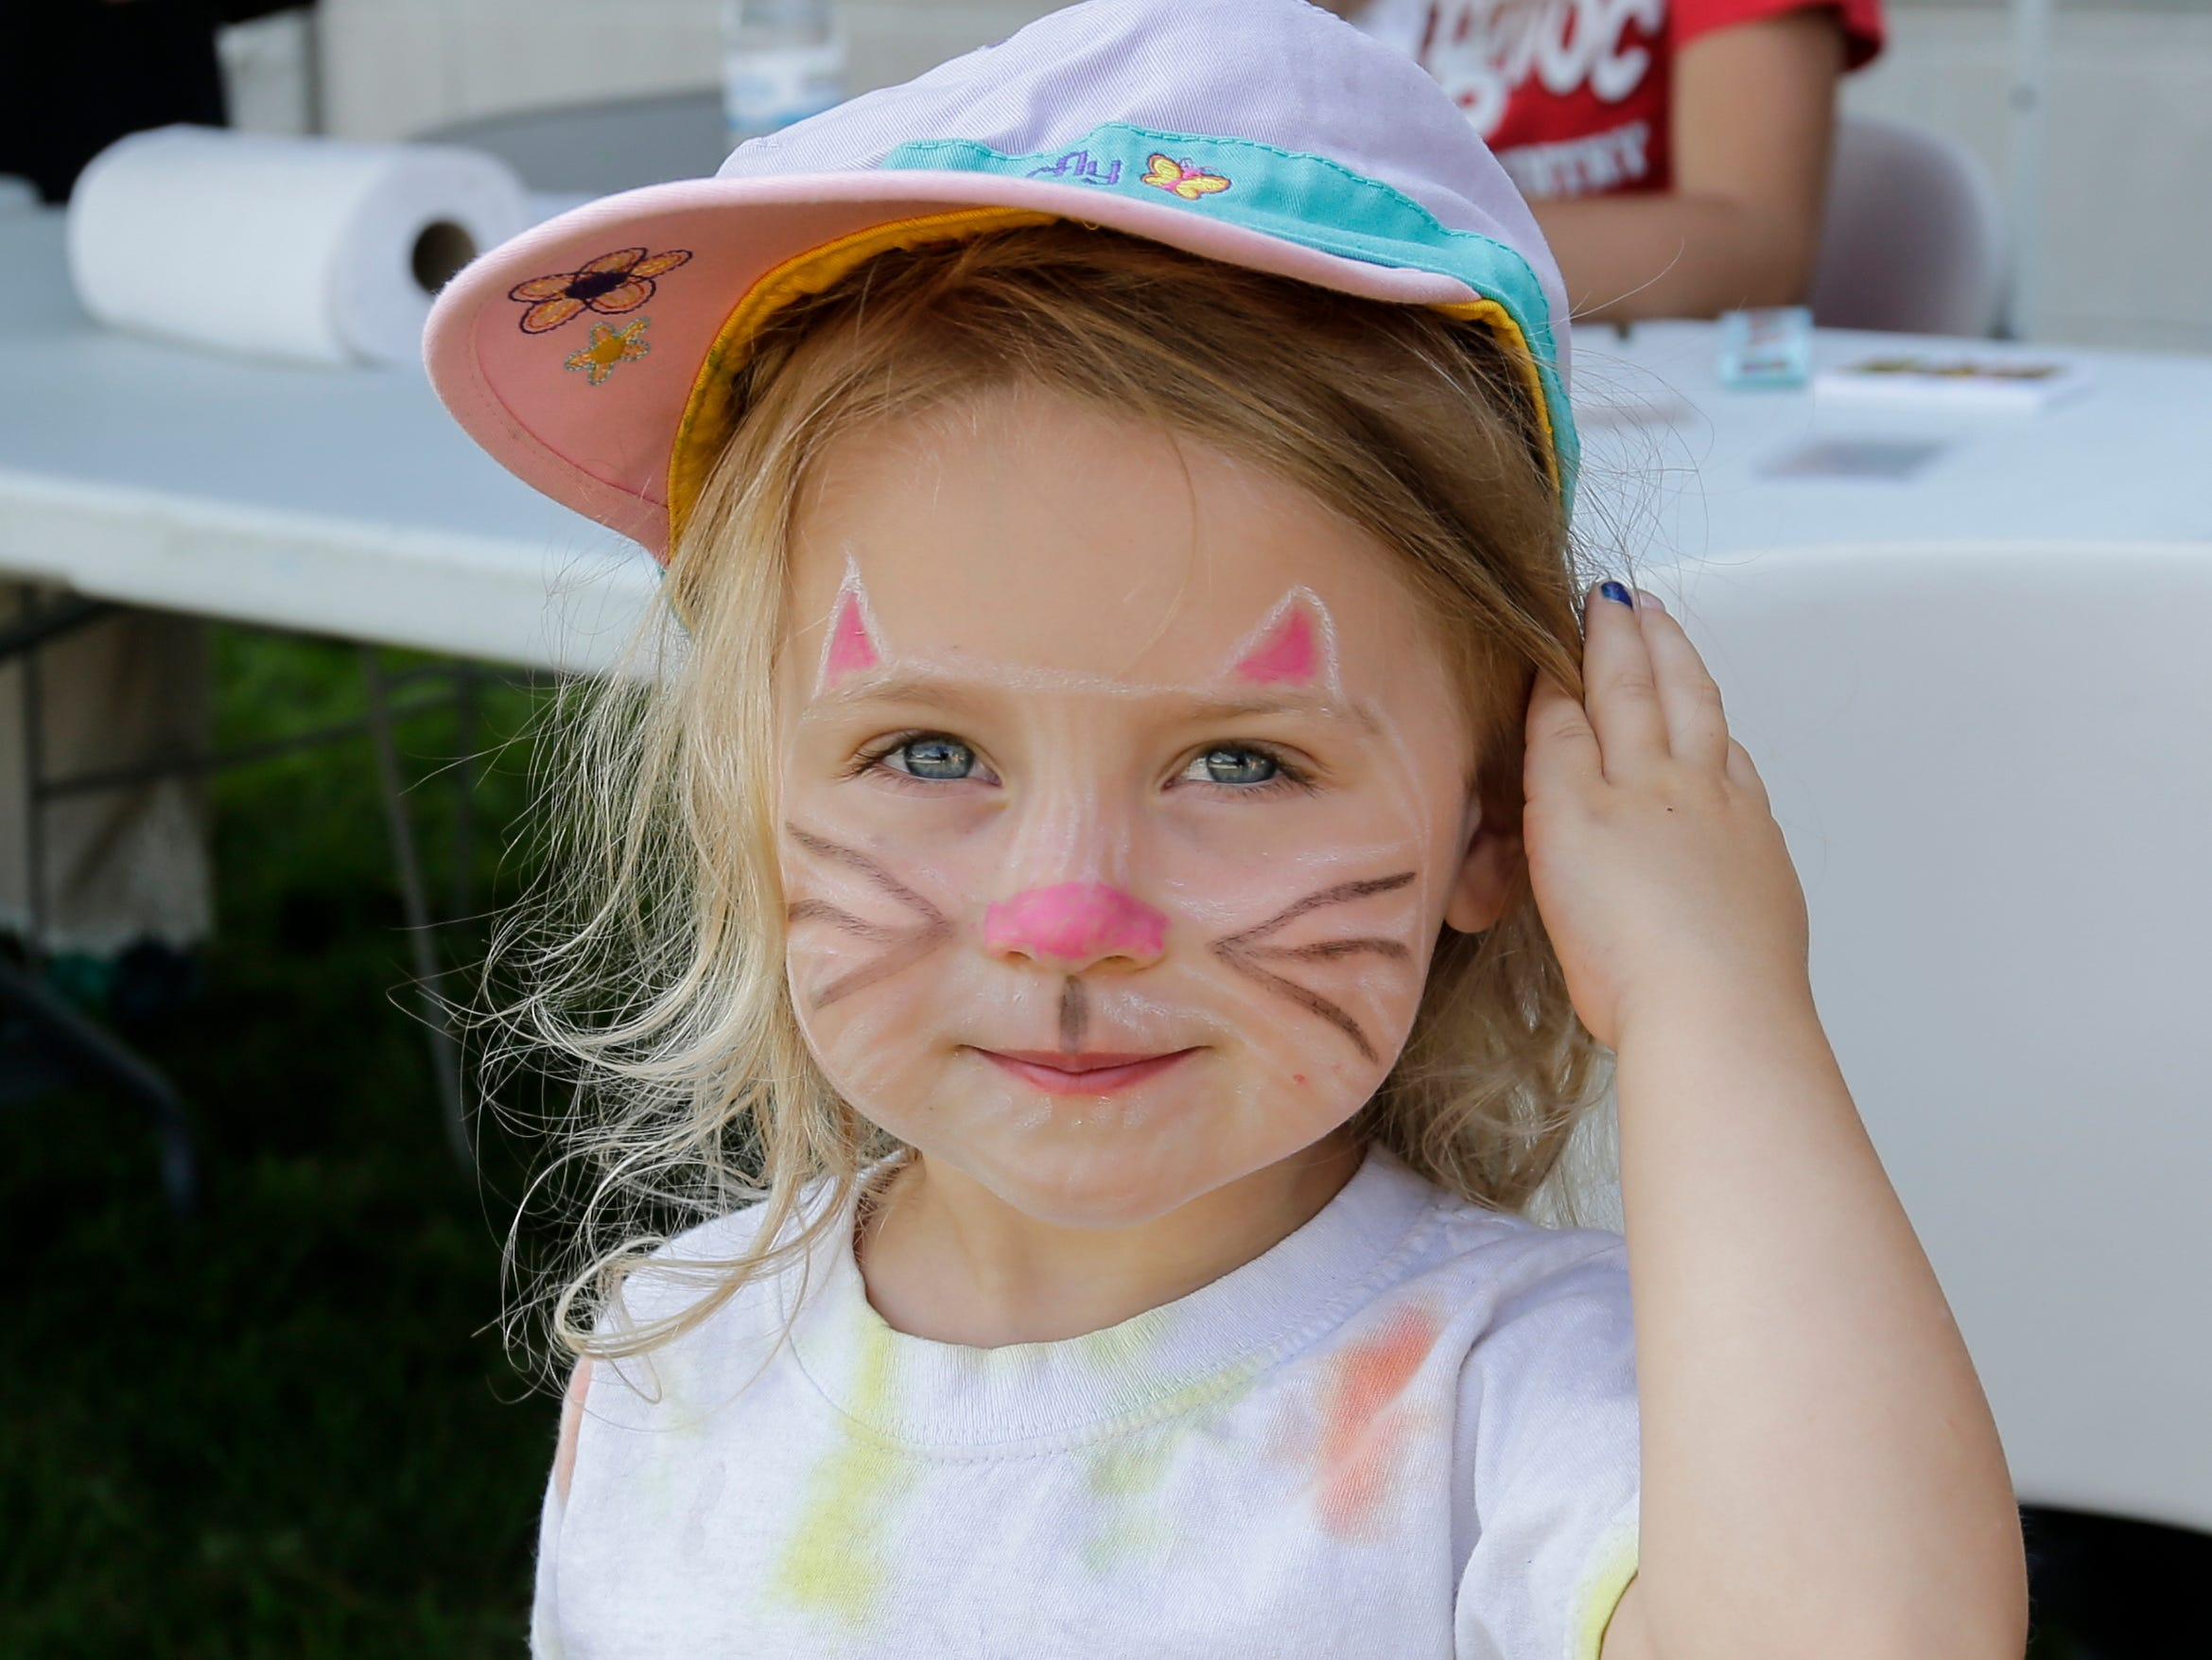 Isabelle Stoeger, 3, shows off her cat face painting at the library carnival Saturday, August 4, 2018, in Manitowoc, Wis. Josh Clark/USA TODAY NETWORK-Wisconsin